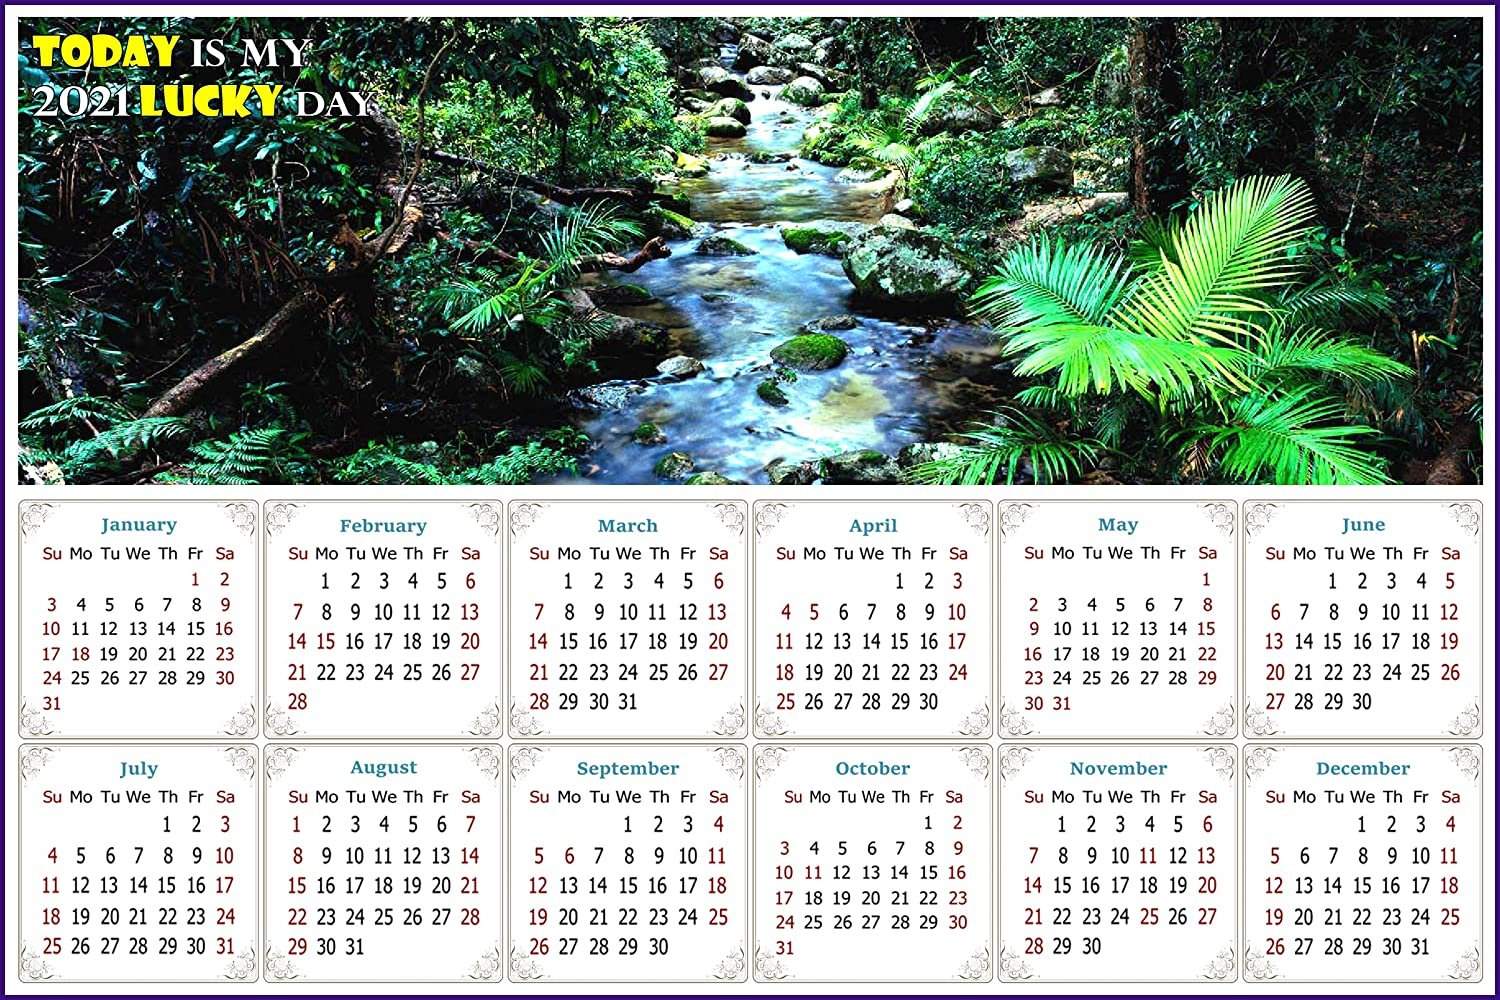 2021 Magnetic Calendar - Today is My Lucky Day - (Daintree National Park)